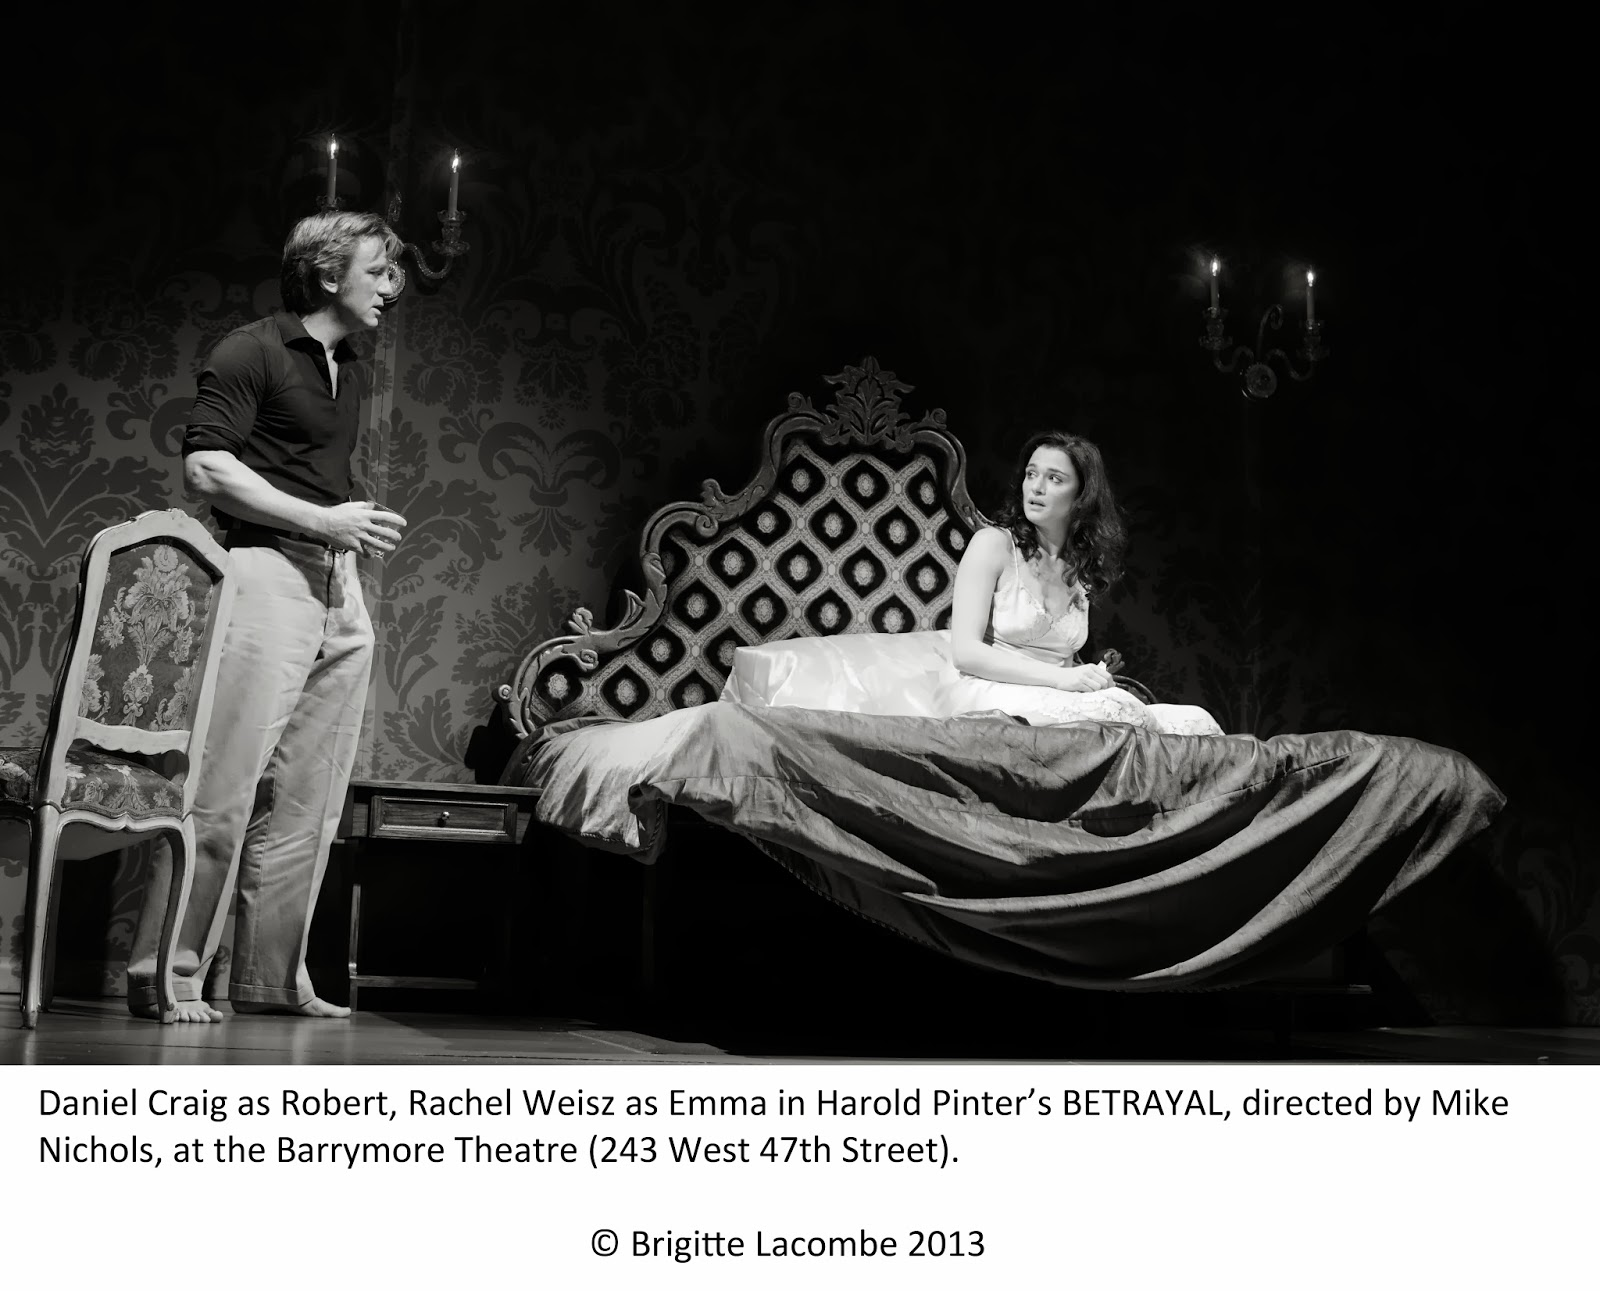 a review of the play betrayal See what all the critics had to say about betrayal and read all the reviews,  including  so why is harold pinter's 1978 play, betrayal, still such a bristling  drama.